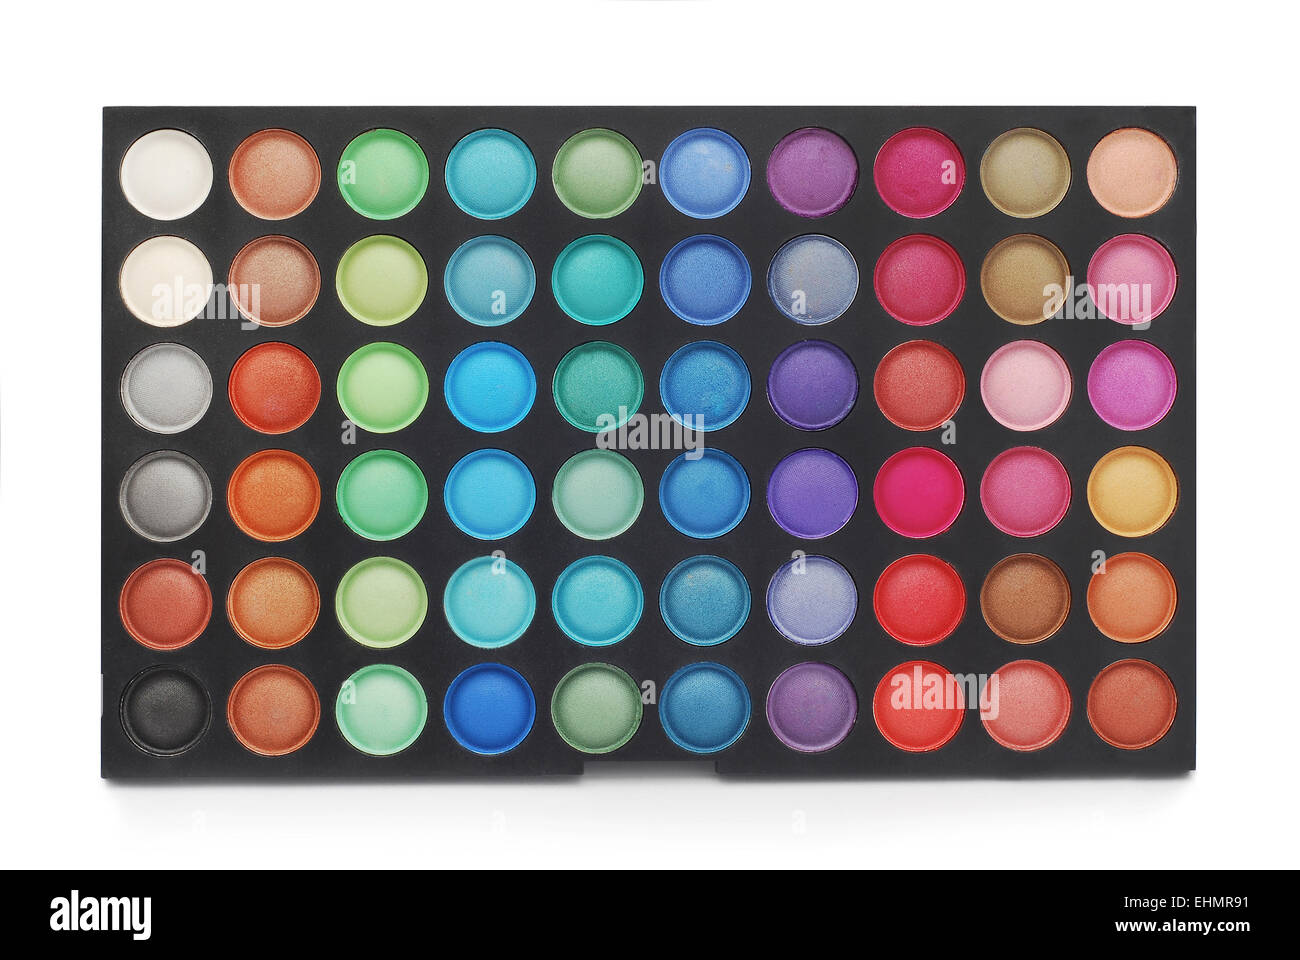 makeup color palette on white - Stock Image